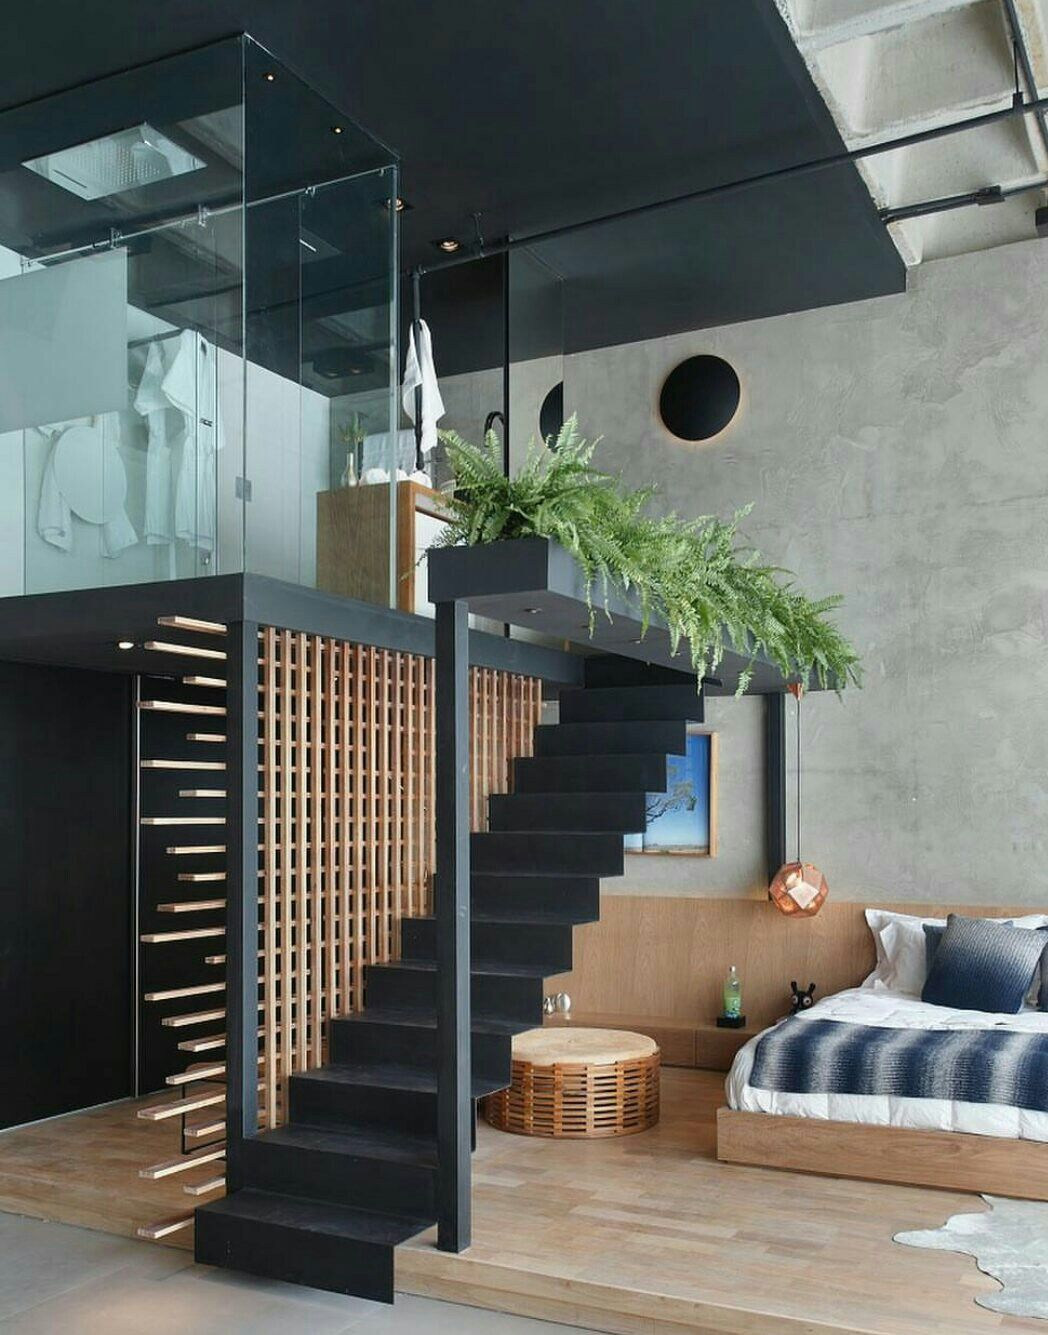 Best Pin By Liz Mulgrew On Lofts Loft Interiors Staircase 400 x 300